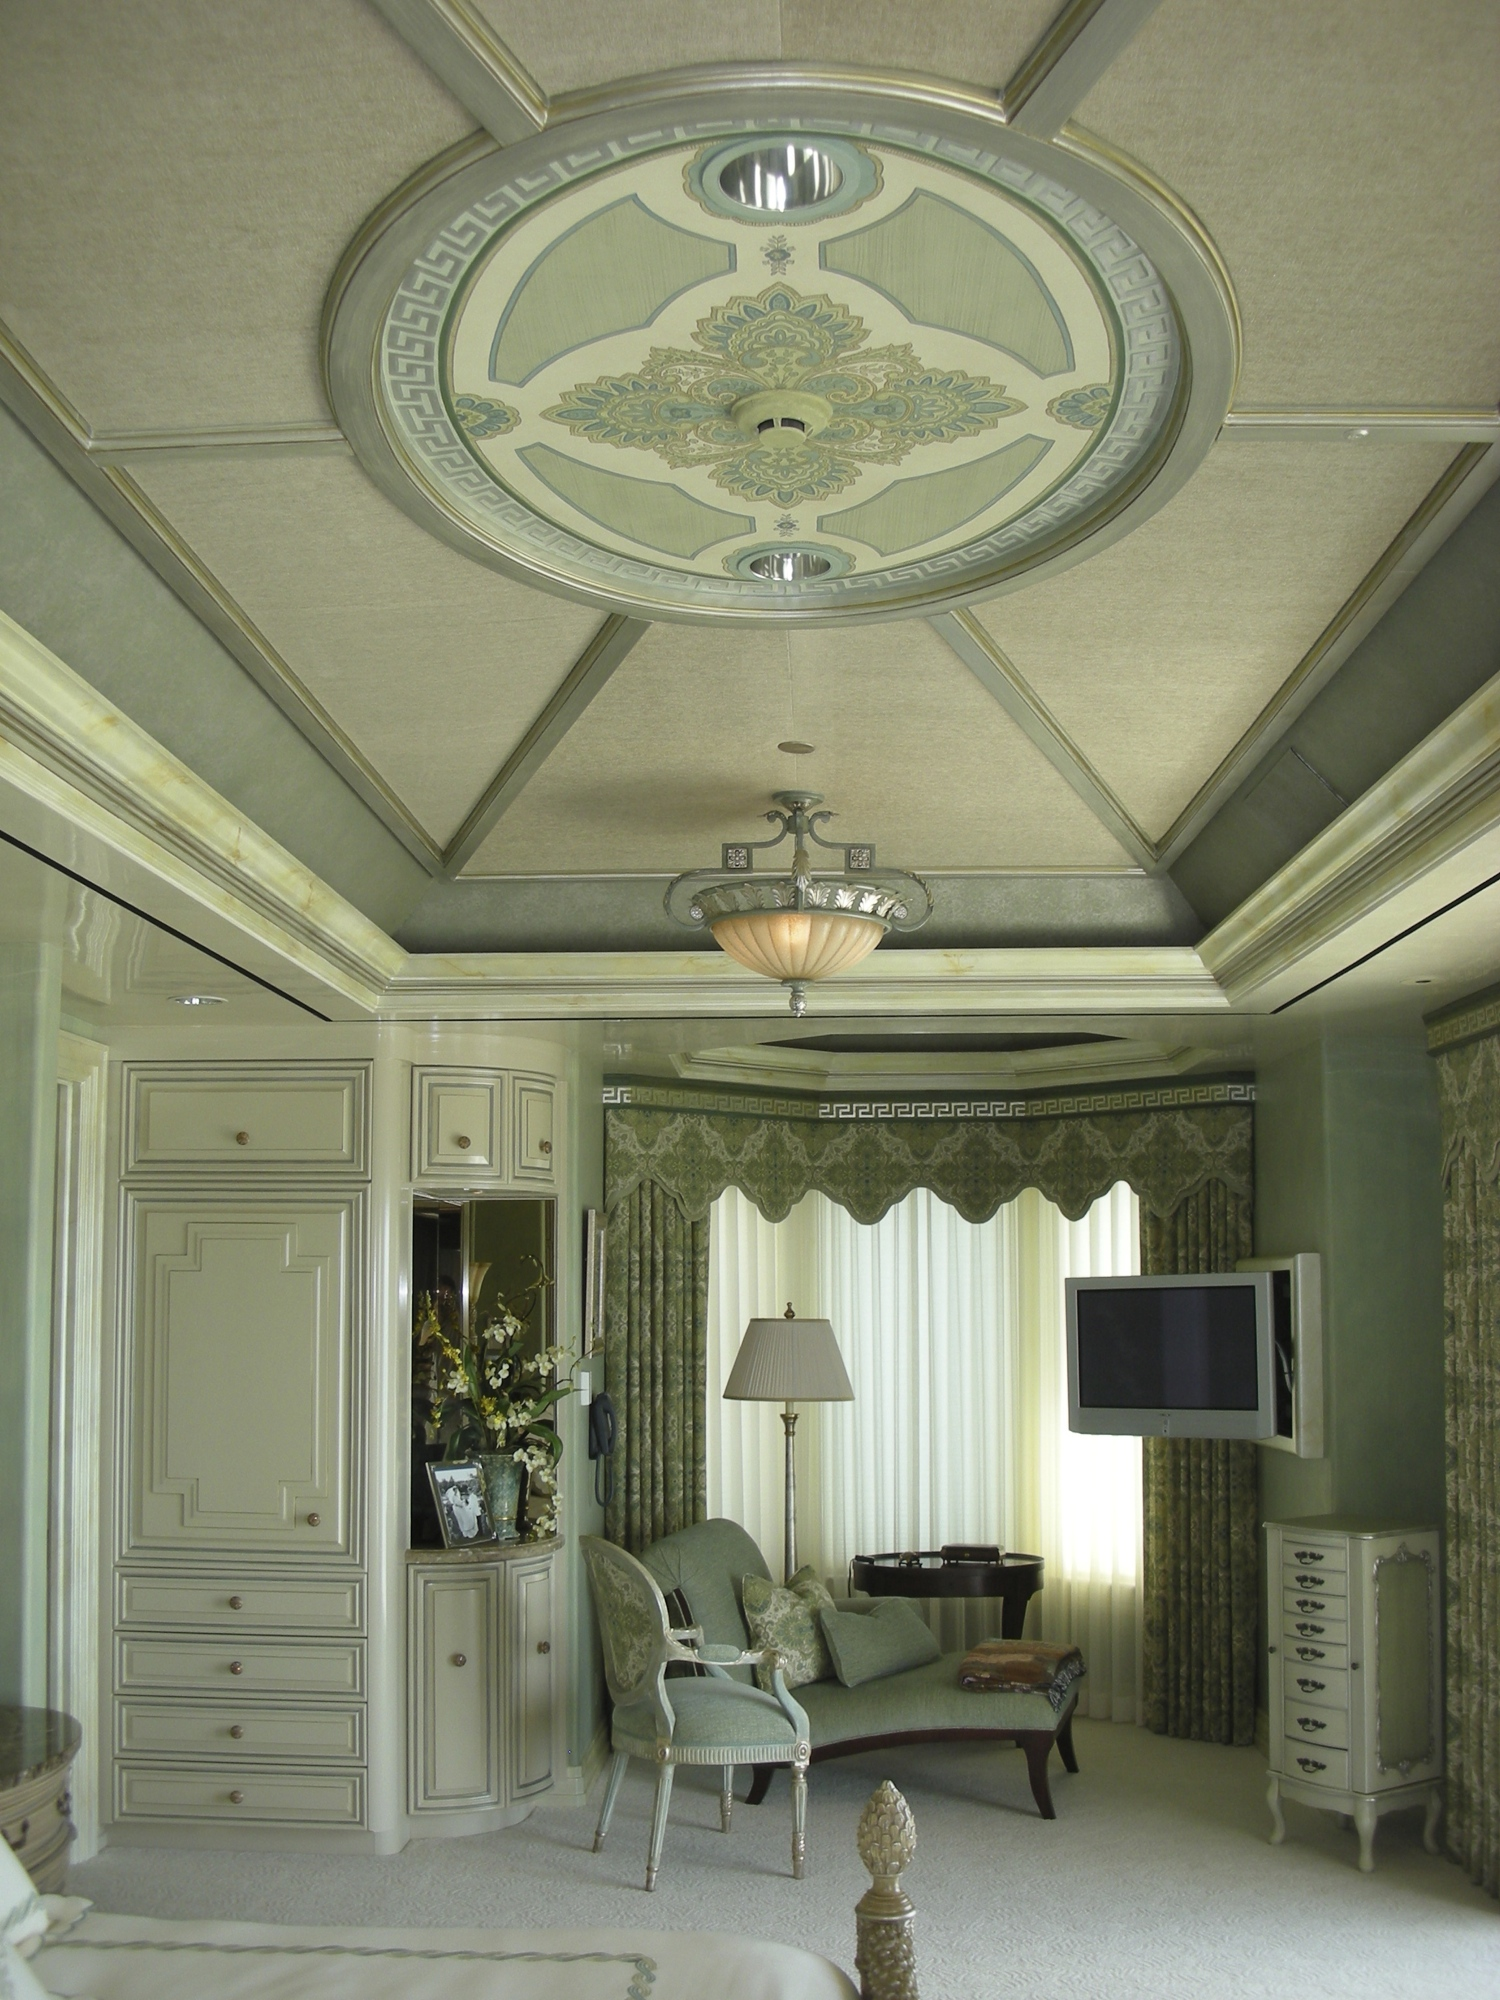 Painted Ceiling and Silver Fret